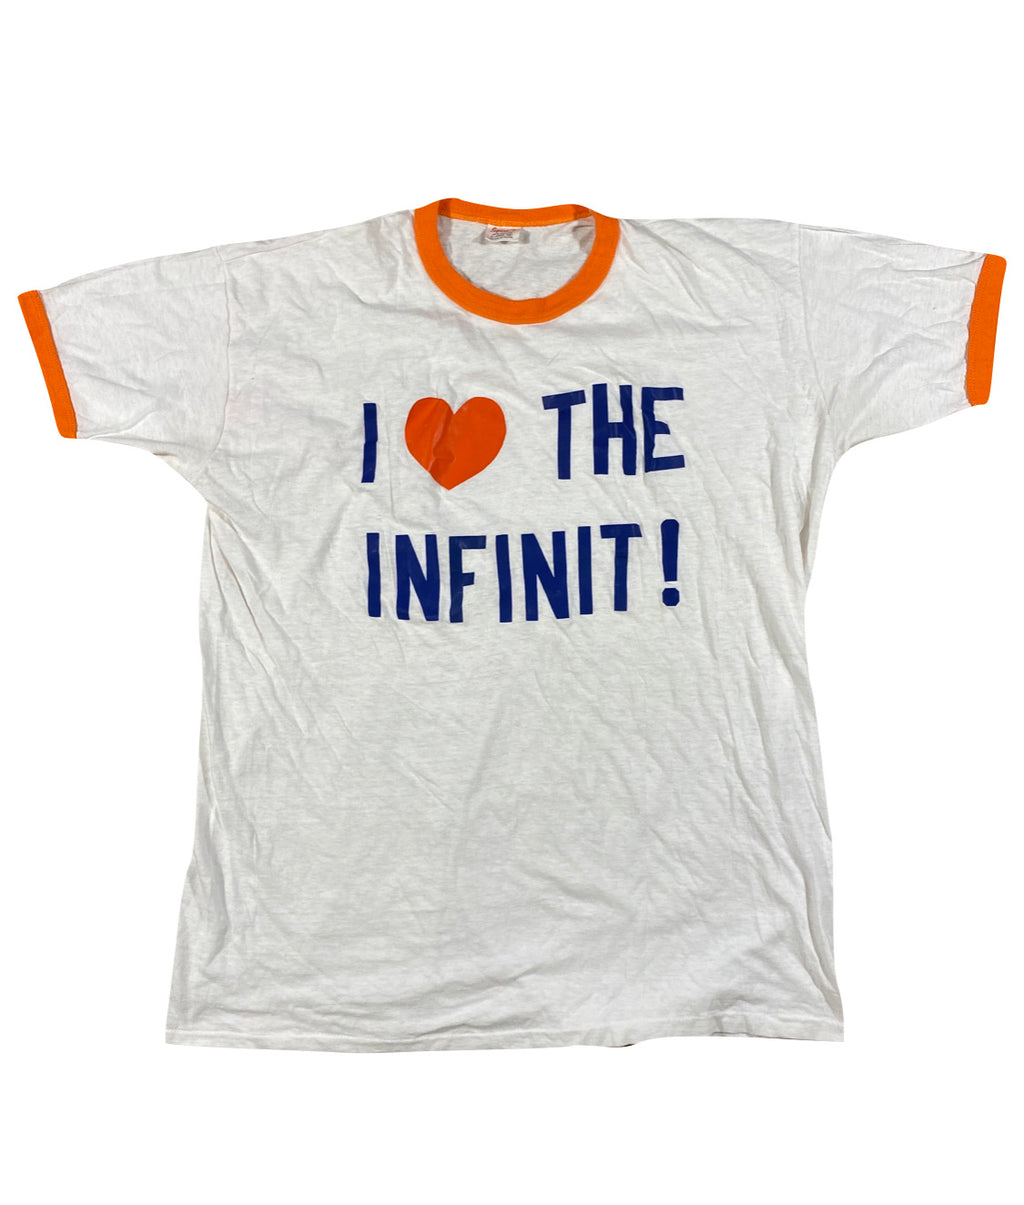 70s Infinit ringer tee. Large fit